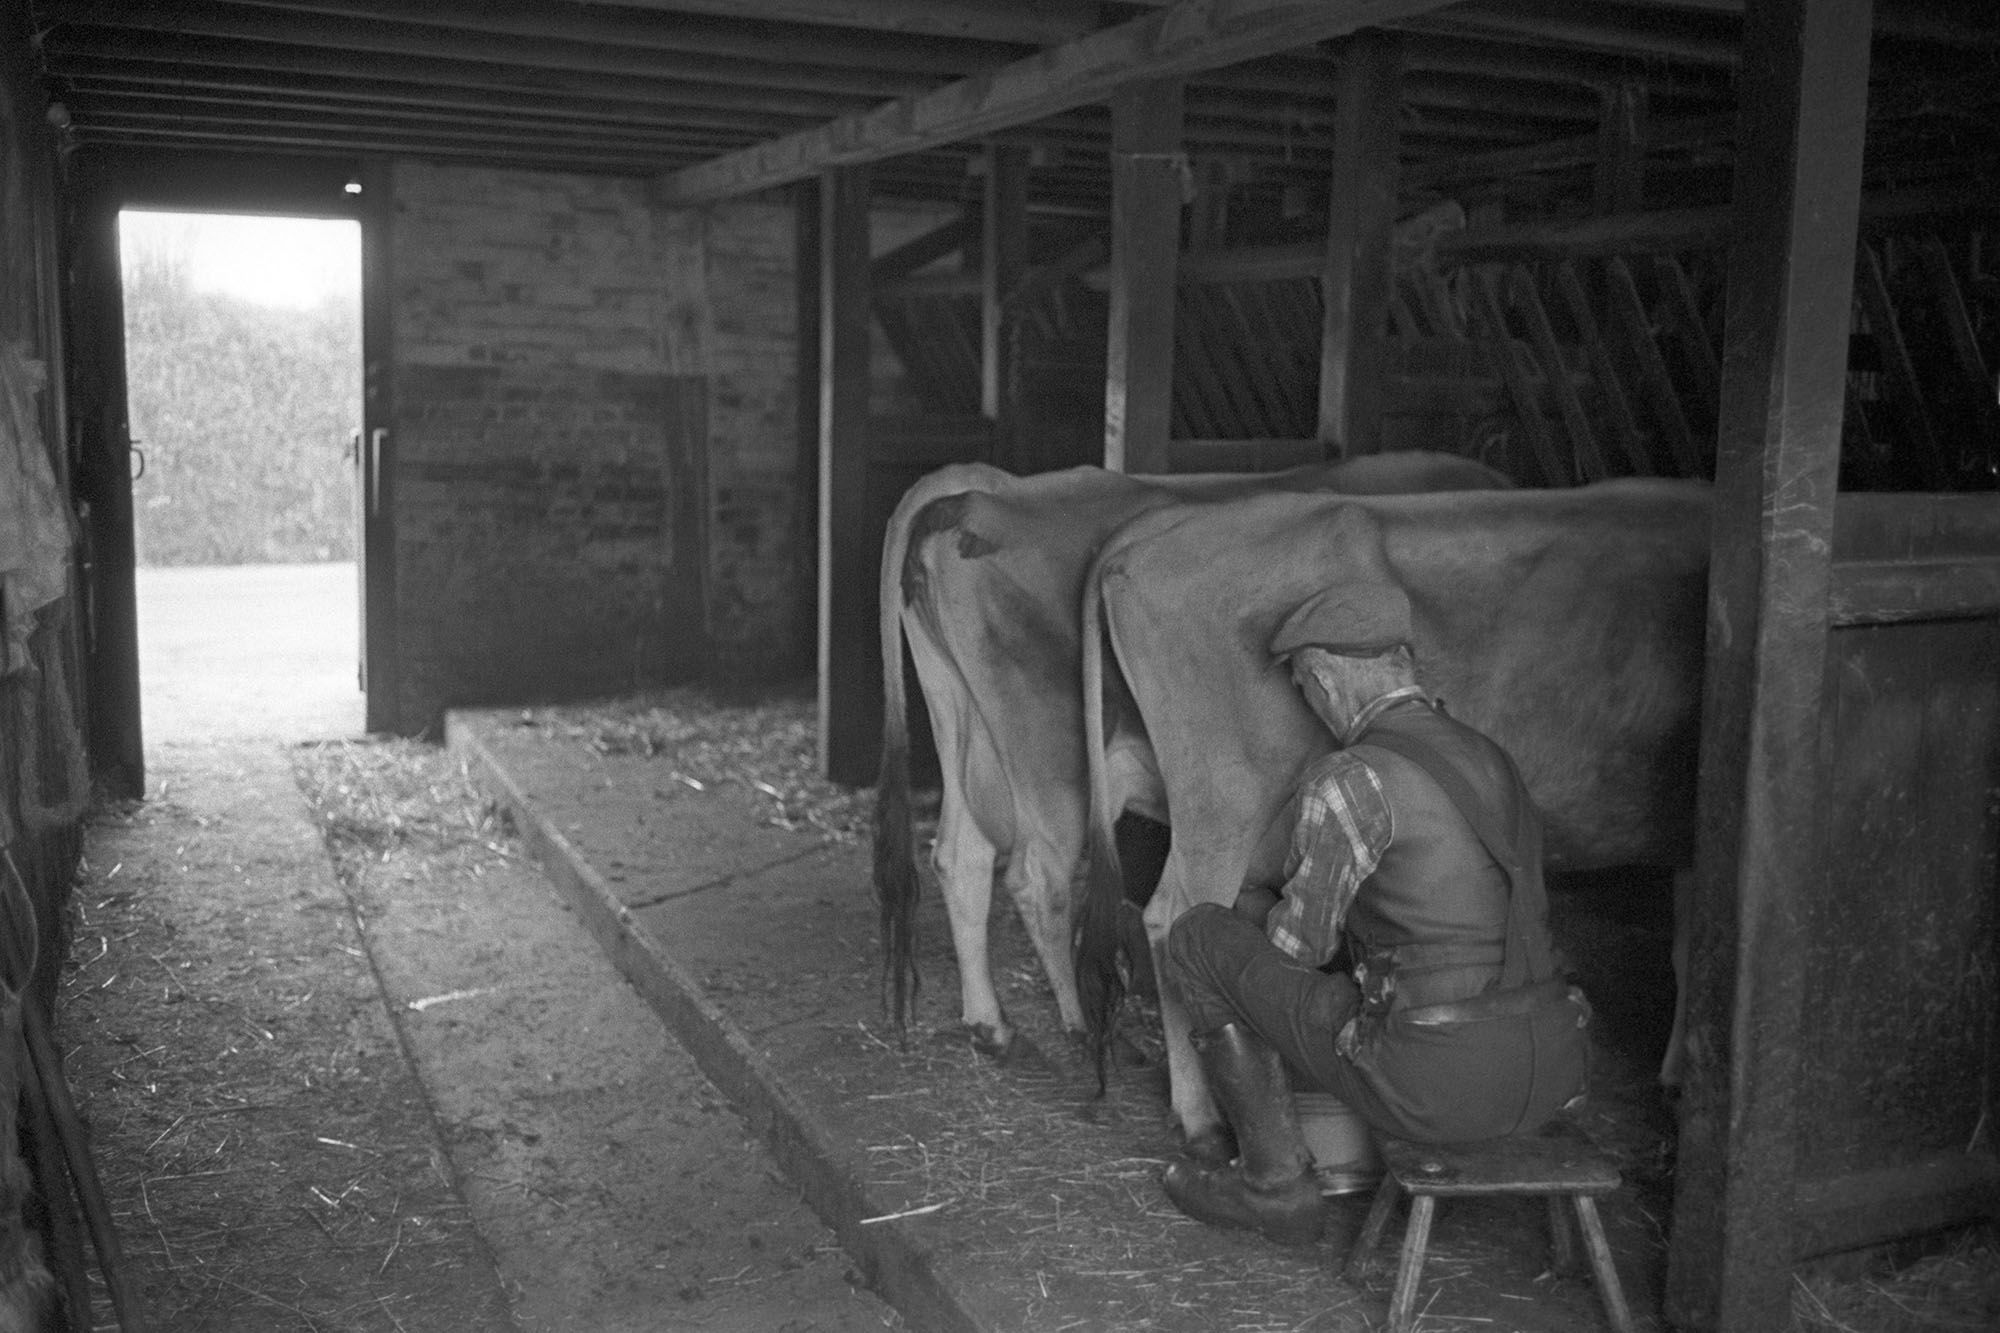 Farmer milking cow by hand.<br /> [Gordon Sanders sitting on a stool milking a cow by hand at Reynards Park, Ashreigney. Another cow is also stood in the milking parlour.]